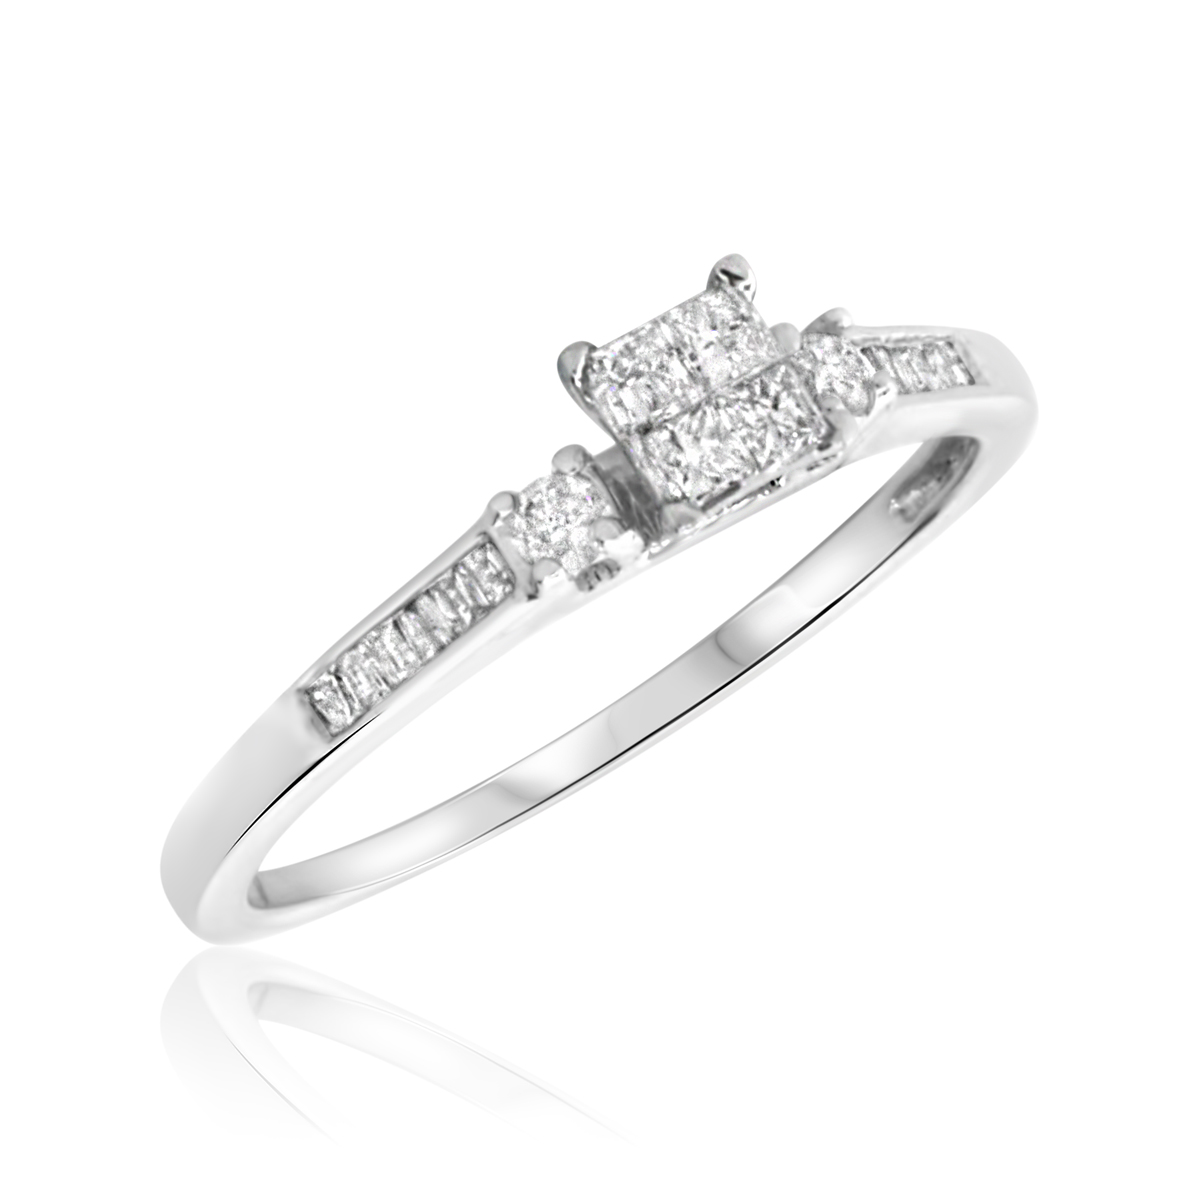 1/4 Carat T.W. Princess, Round, Baguette Cut Diamond Ladies Engagement Ring 10K White Gold